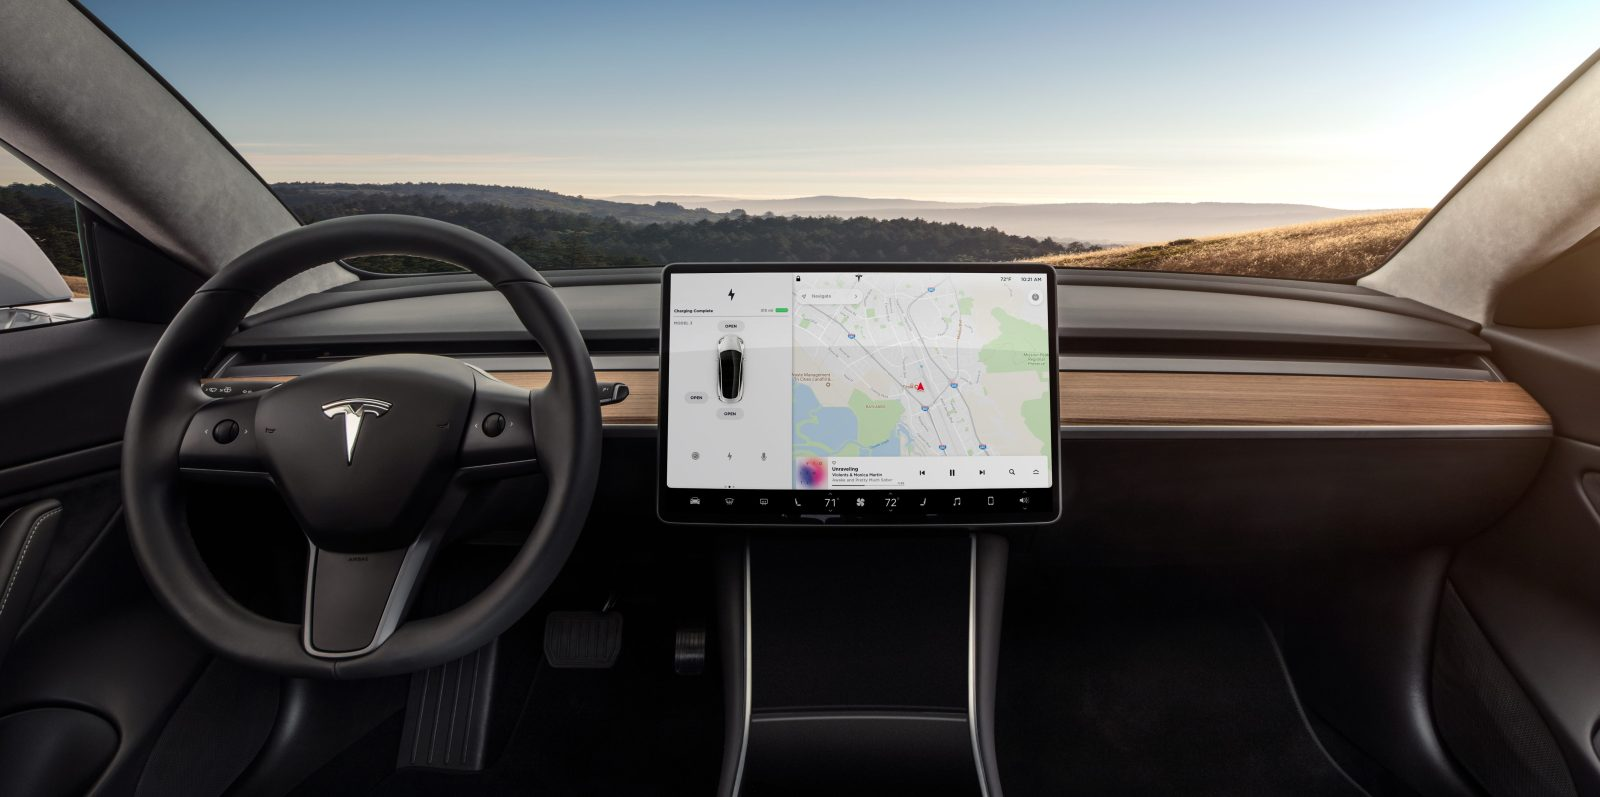 Tesla releases new updates adding convenience feature as it